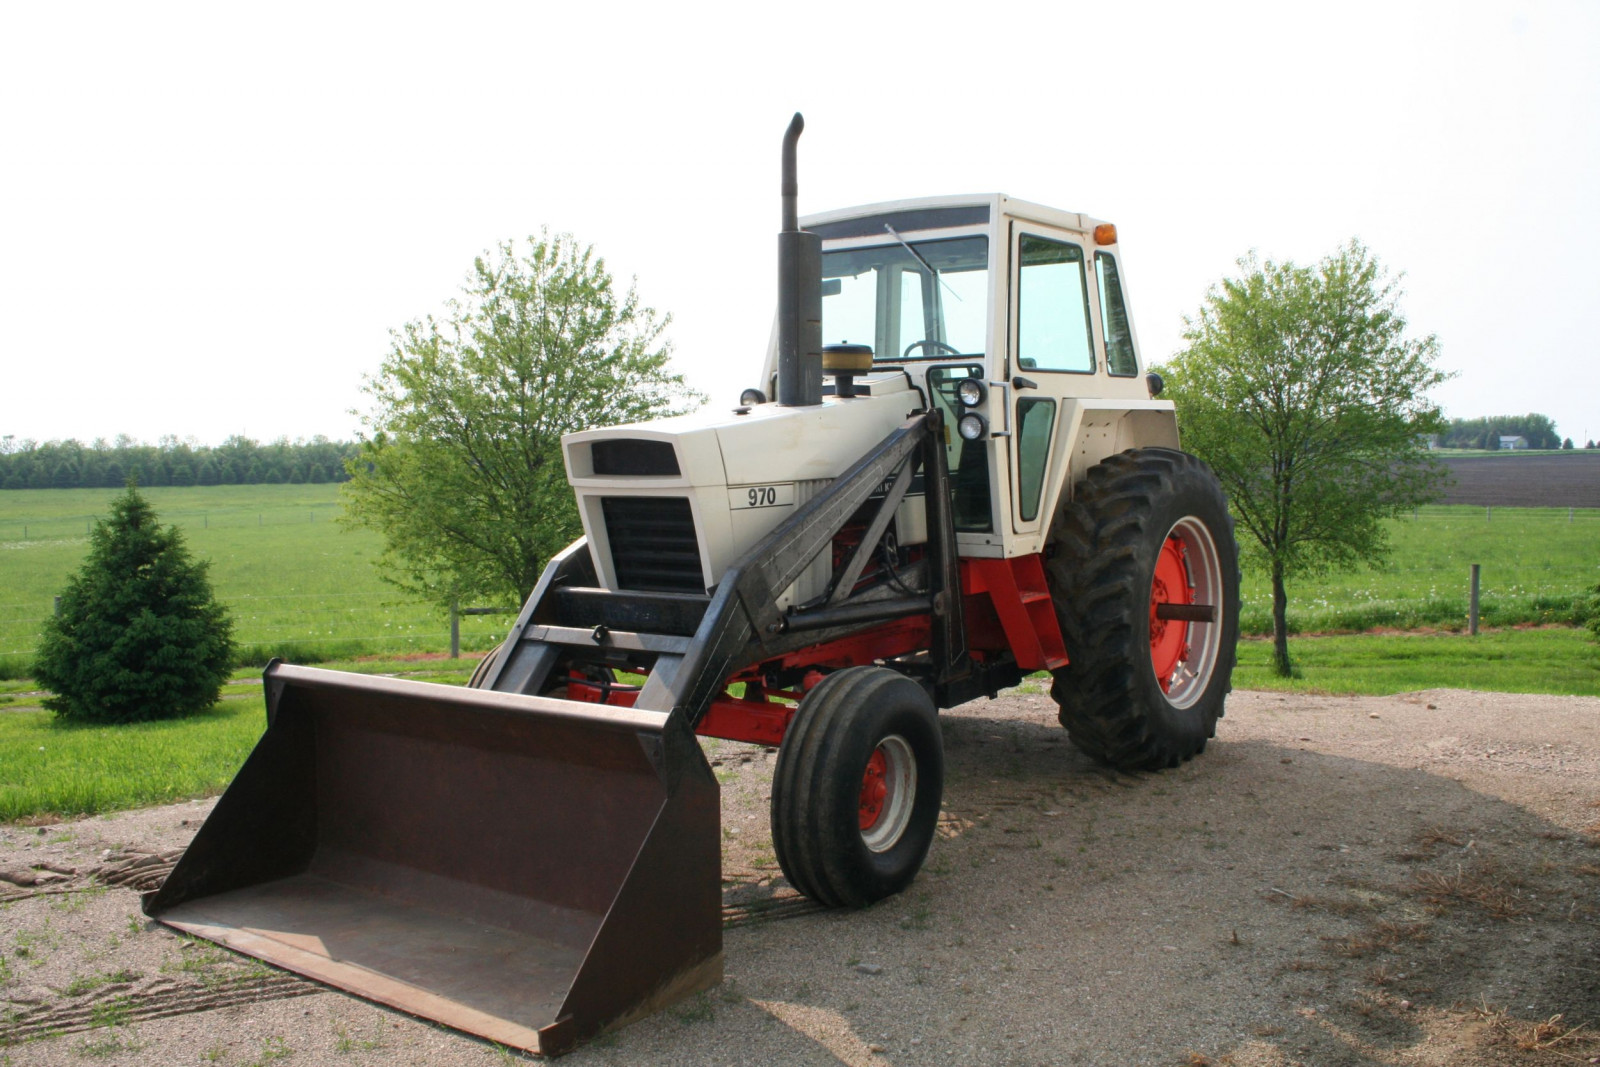 1978 Case 970 Tractor - Image 1